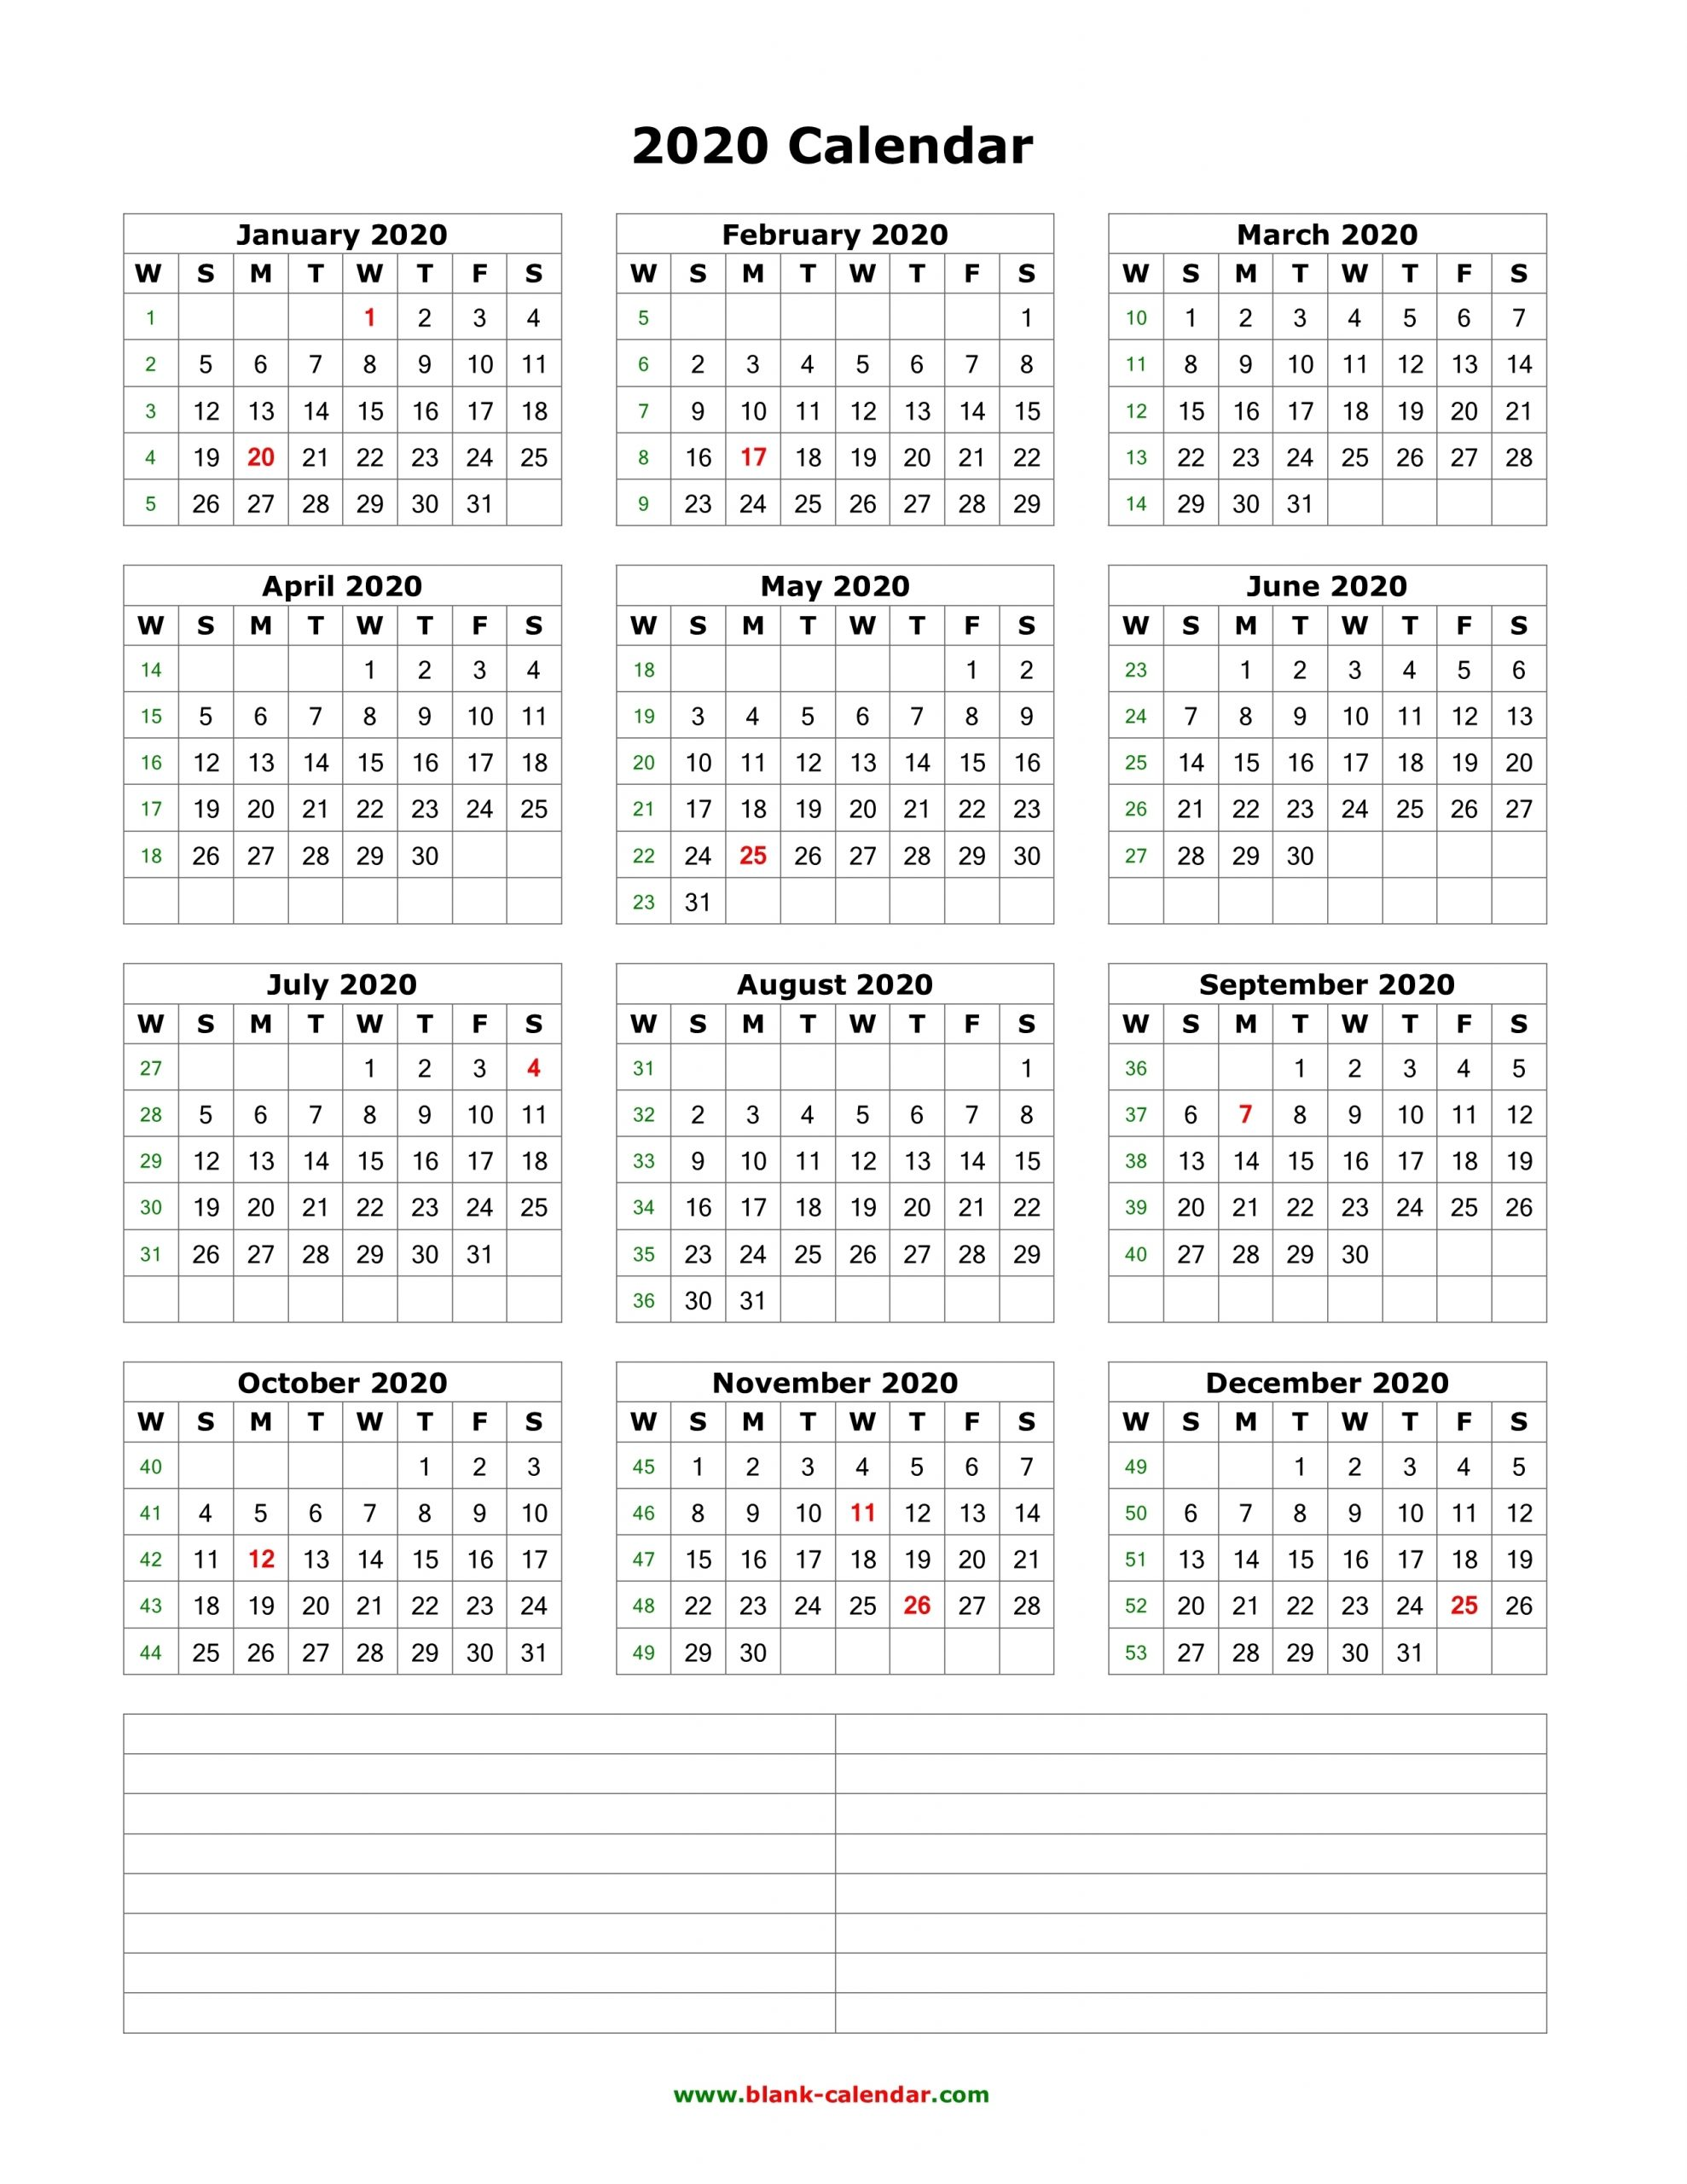 Download Blank Calendar 2020 With Space For Notes (12 Months